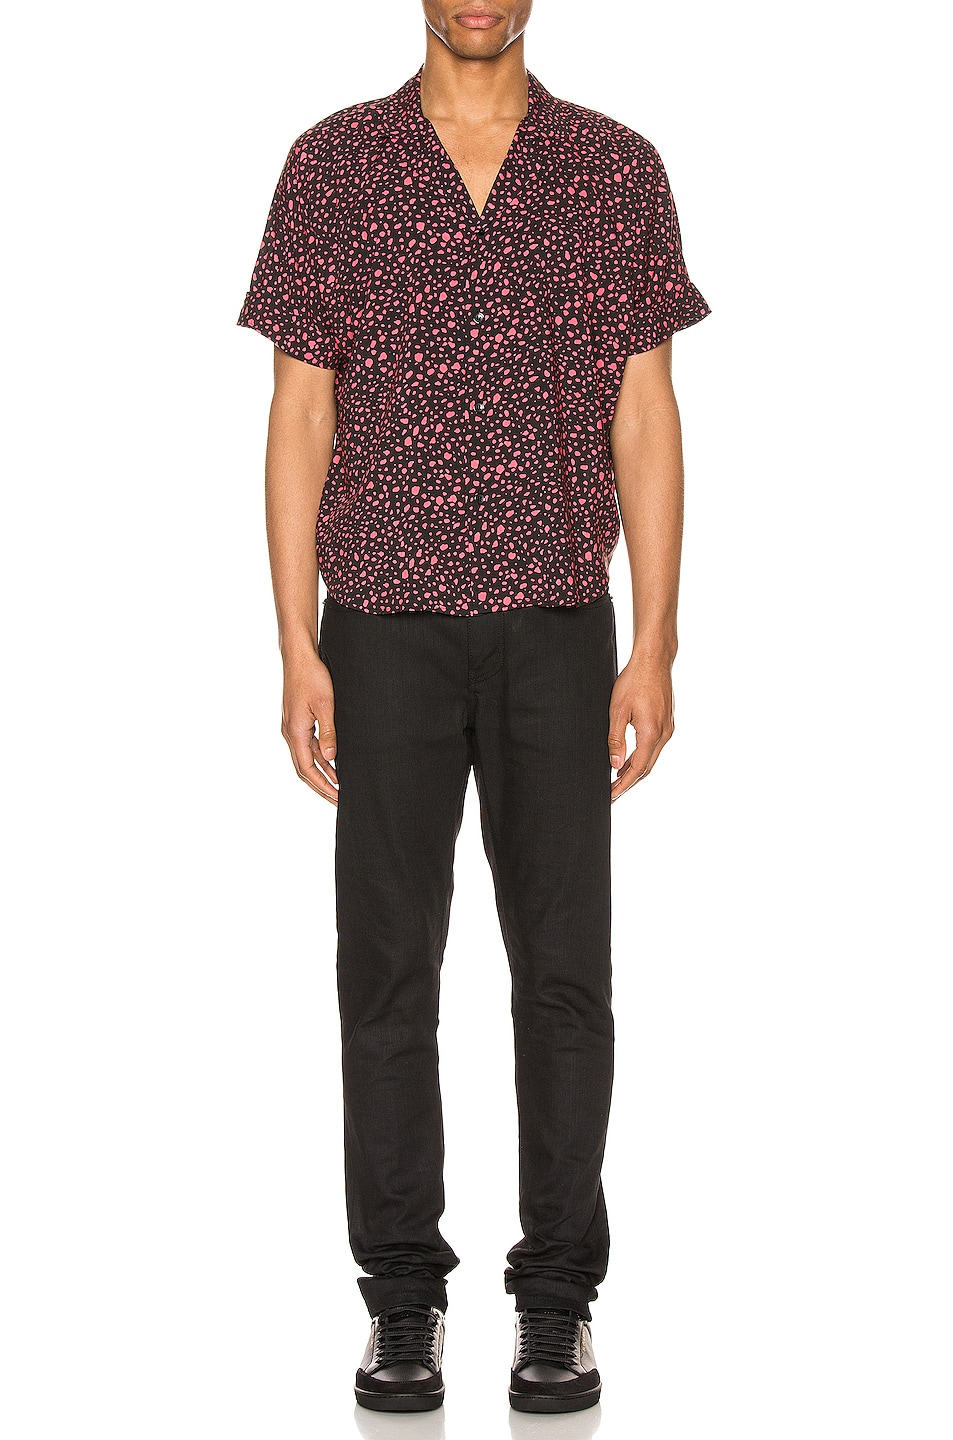 Image 4 of Saint Laurent Short Sleeve Shirt in Black & Fuchsia